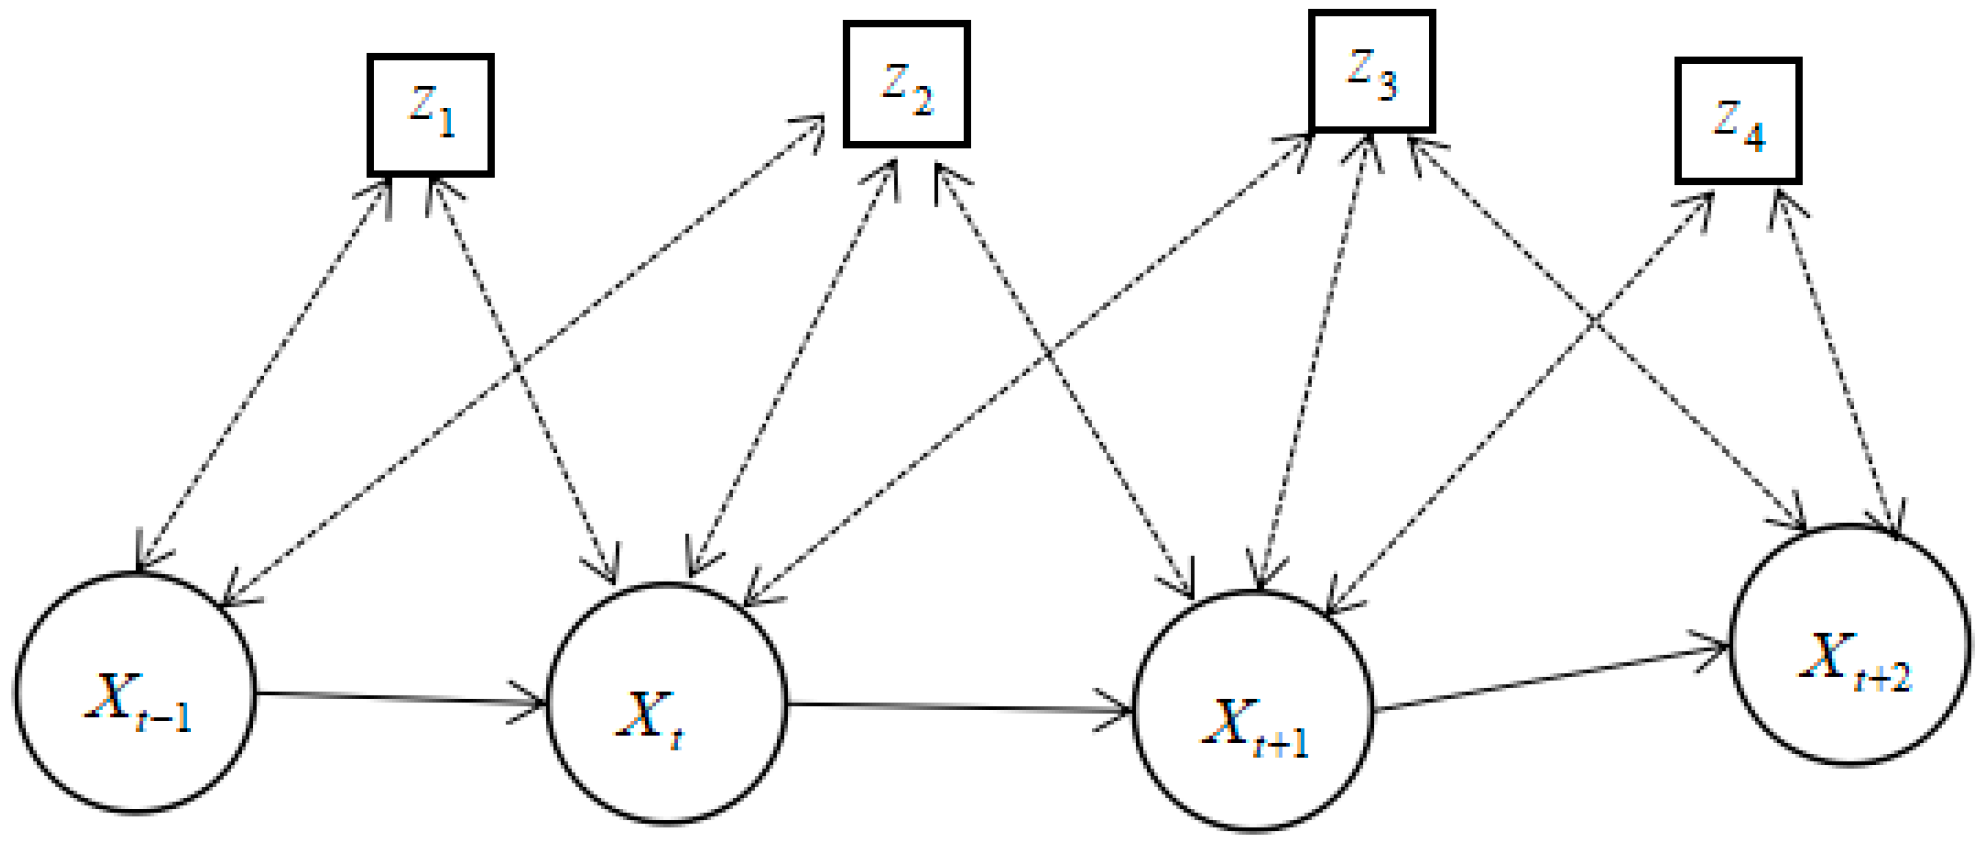 Applied Sciences | Free Full-Text | A Simultaneous Localization and